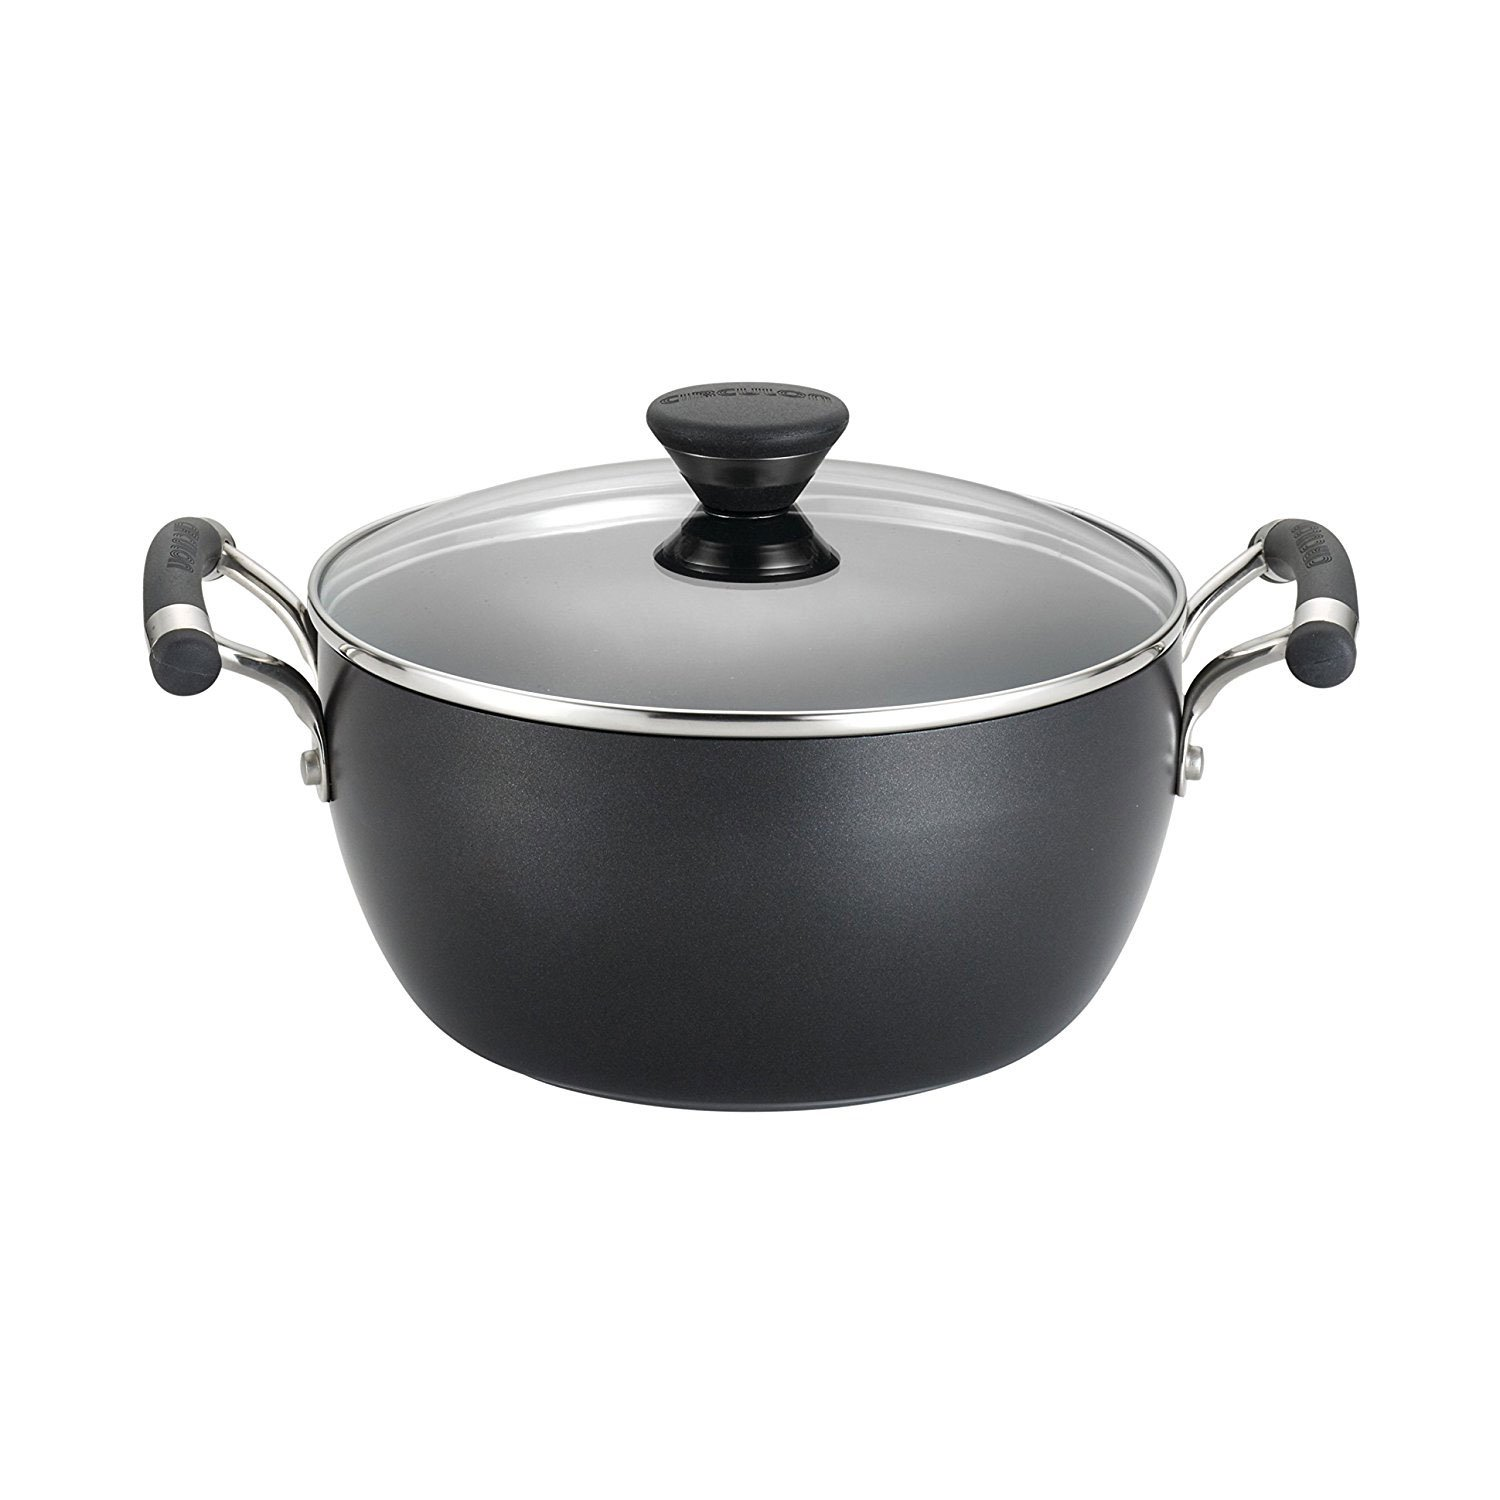 Circulon Acclaim Hard Anodized Nonstick 4-1/2-Quart Covered Casserole